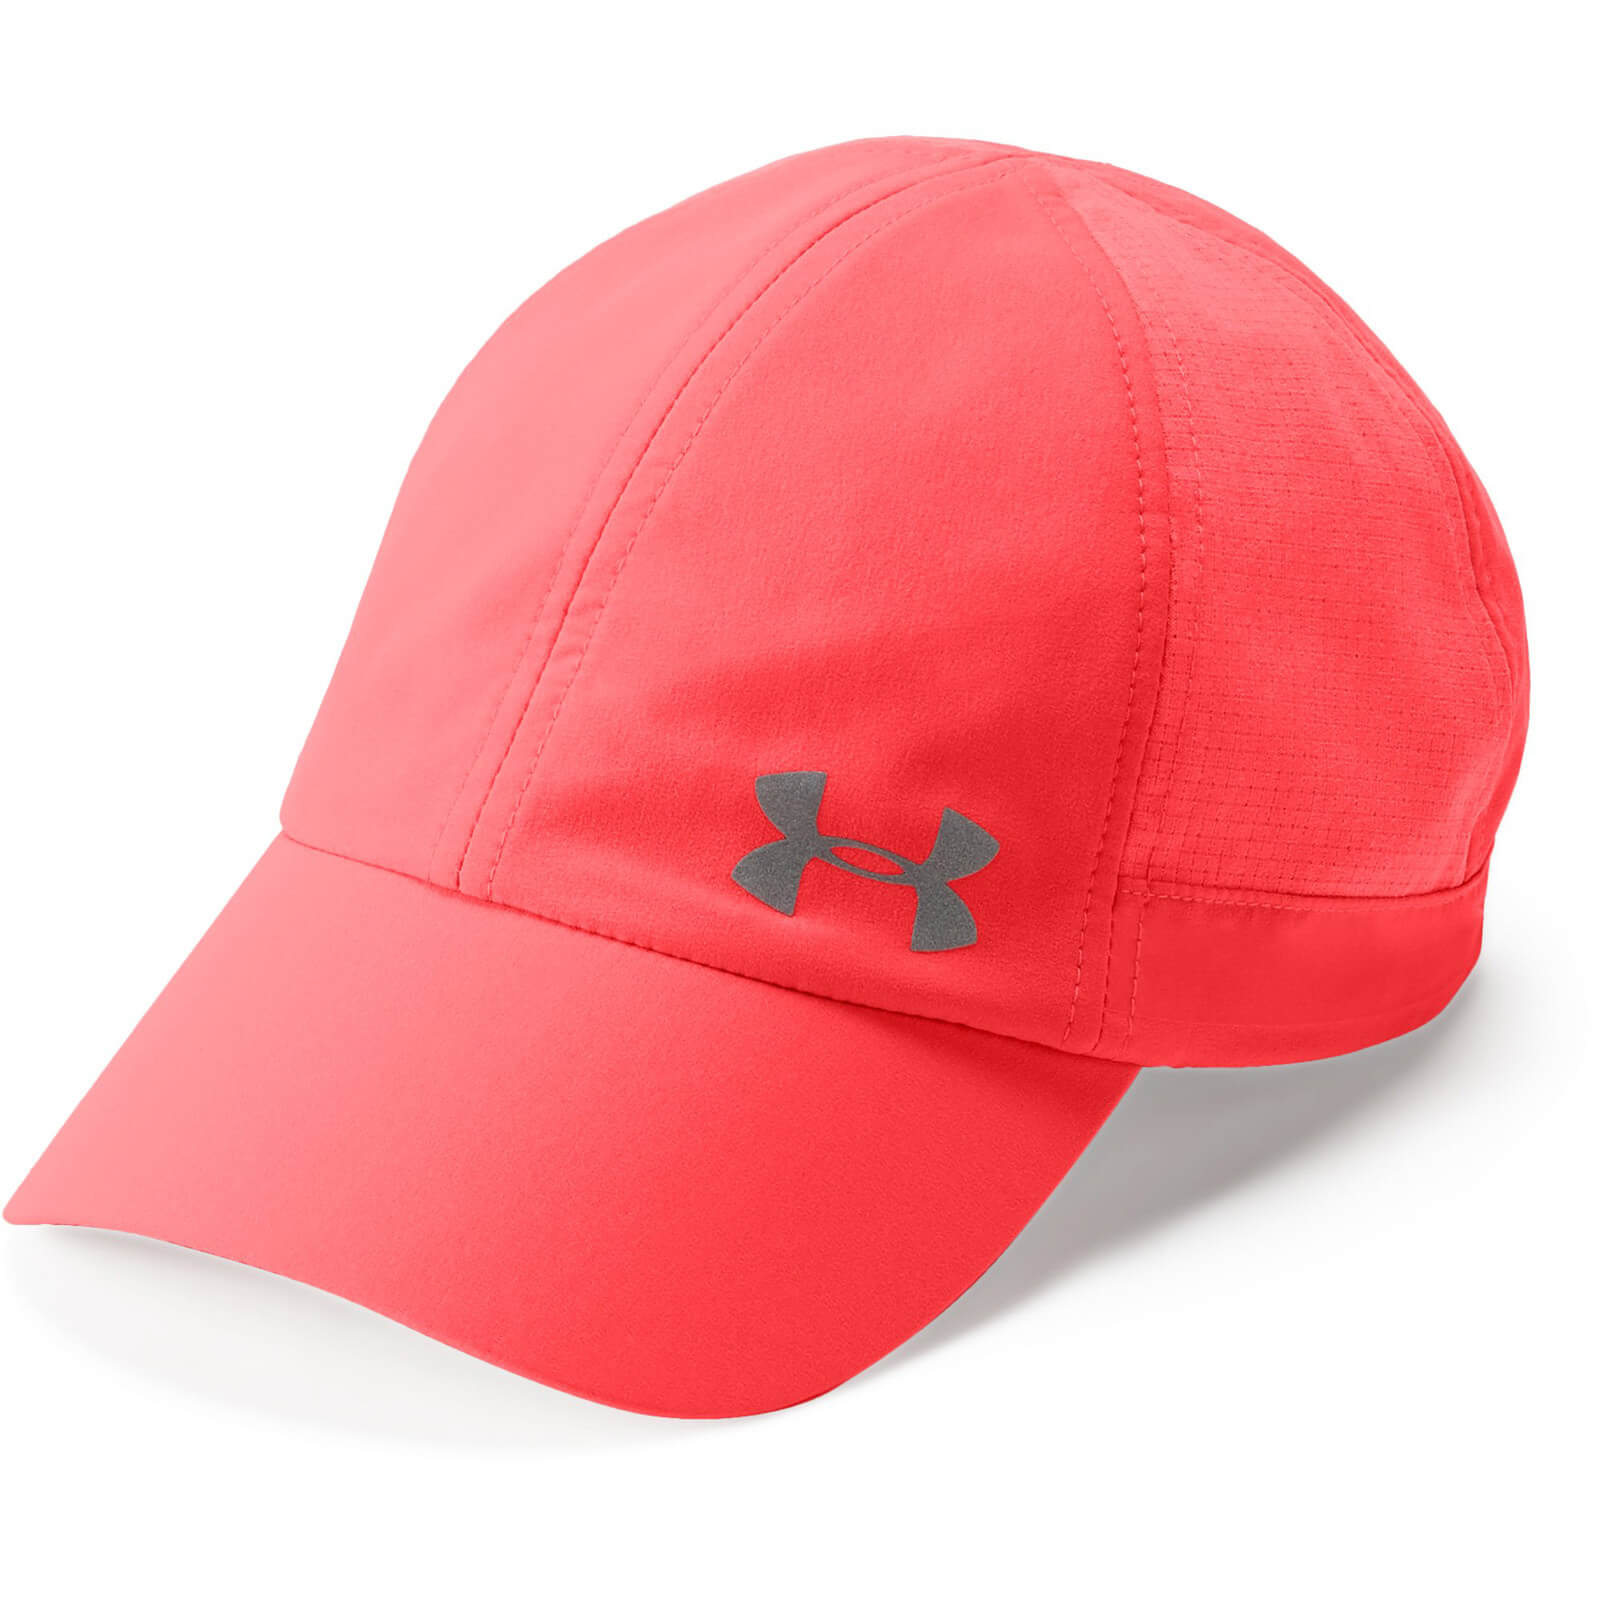 Under Armour Fly By Cap - Orange